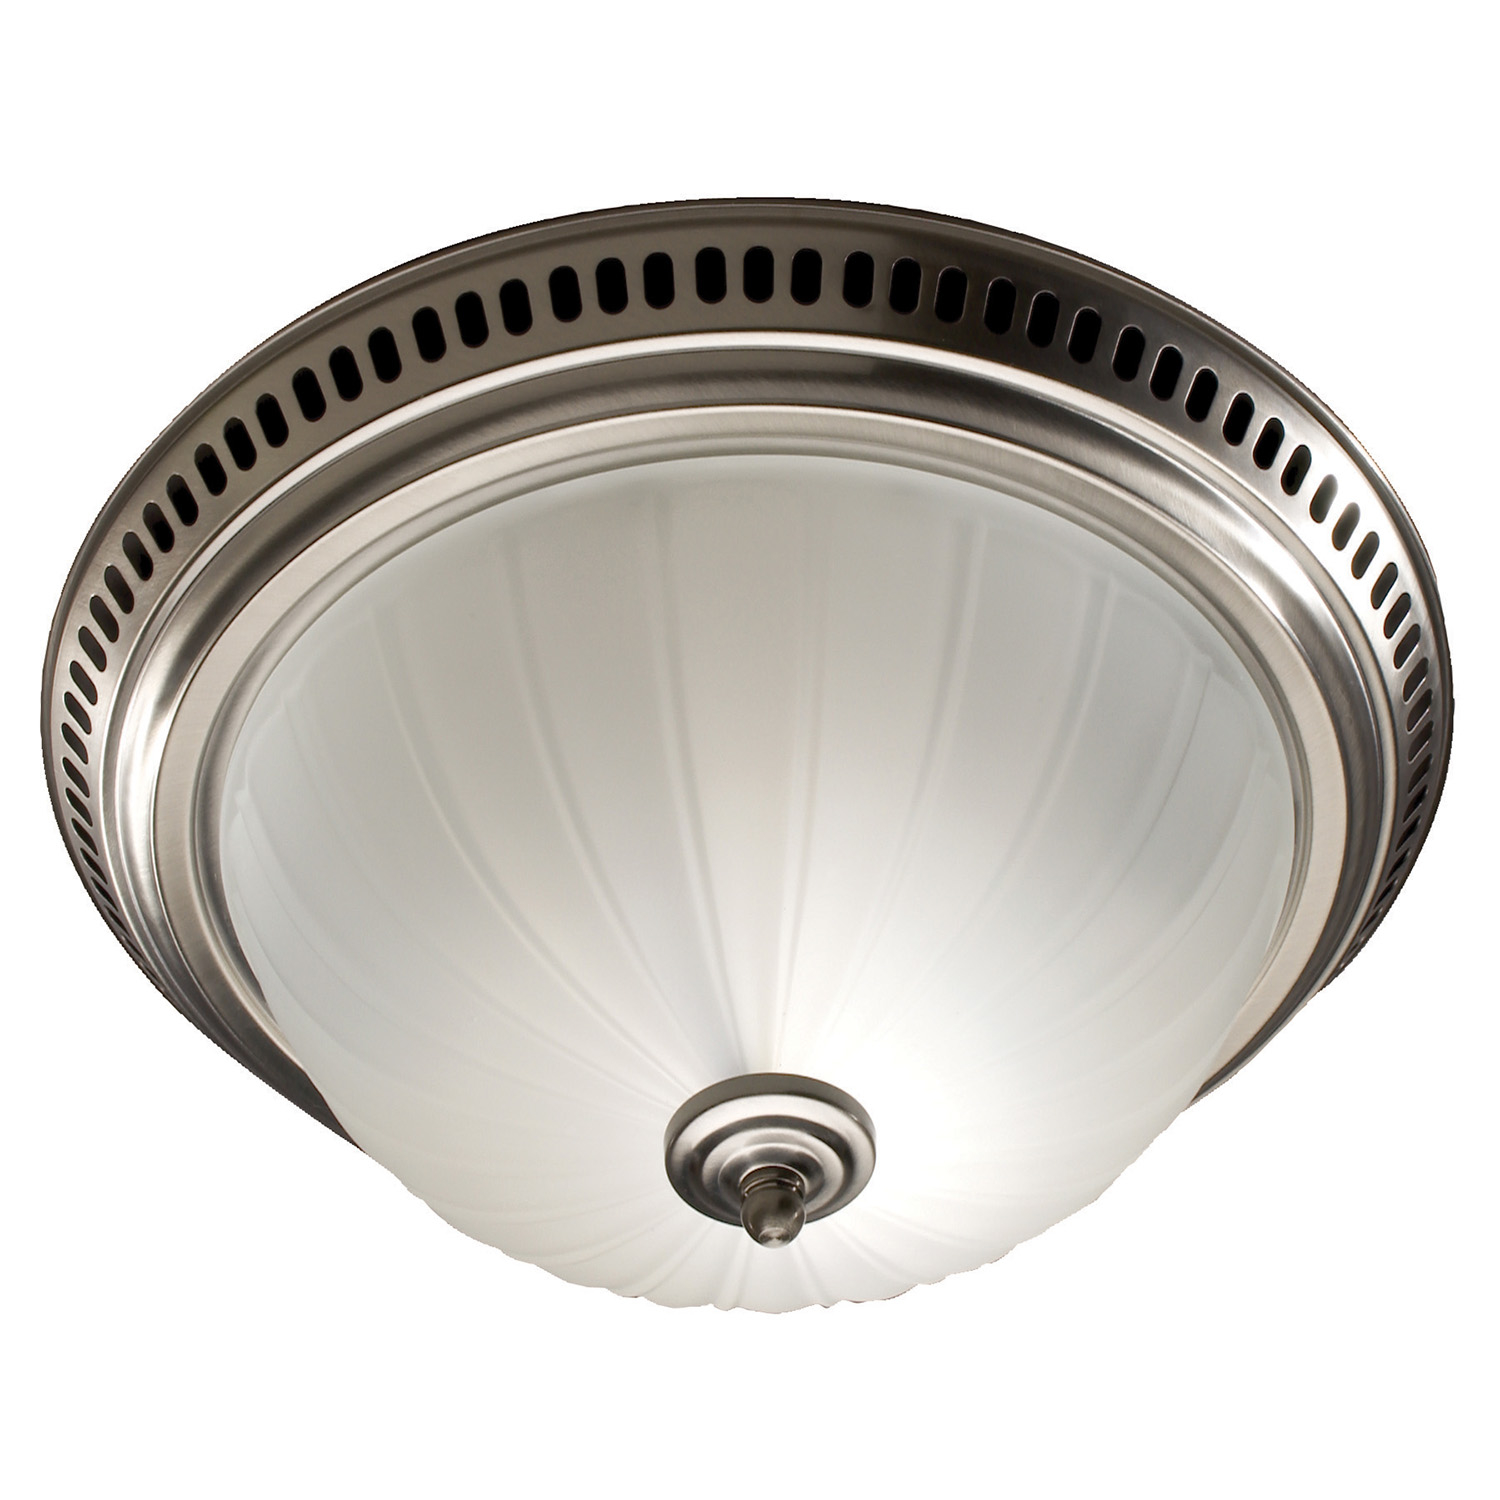 Broan 741 SN Satin Nickel/Frosted Glass Globe Decorative Ceiling Ventilation Fan Light